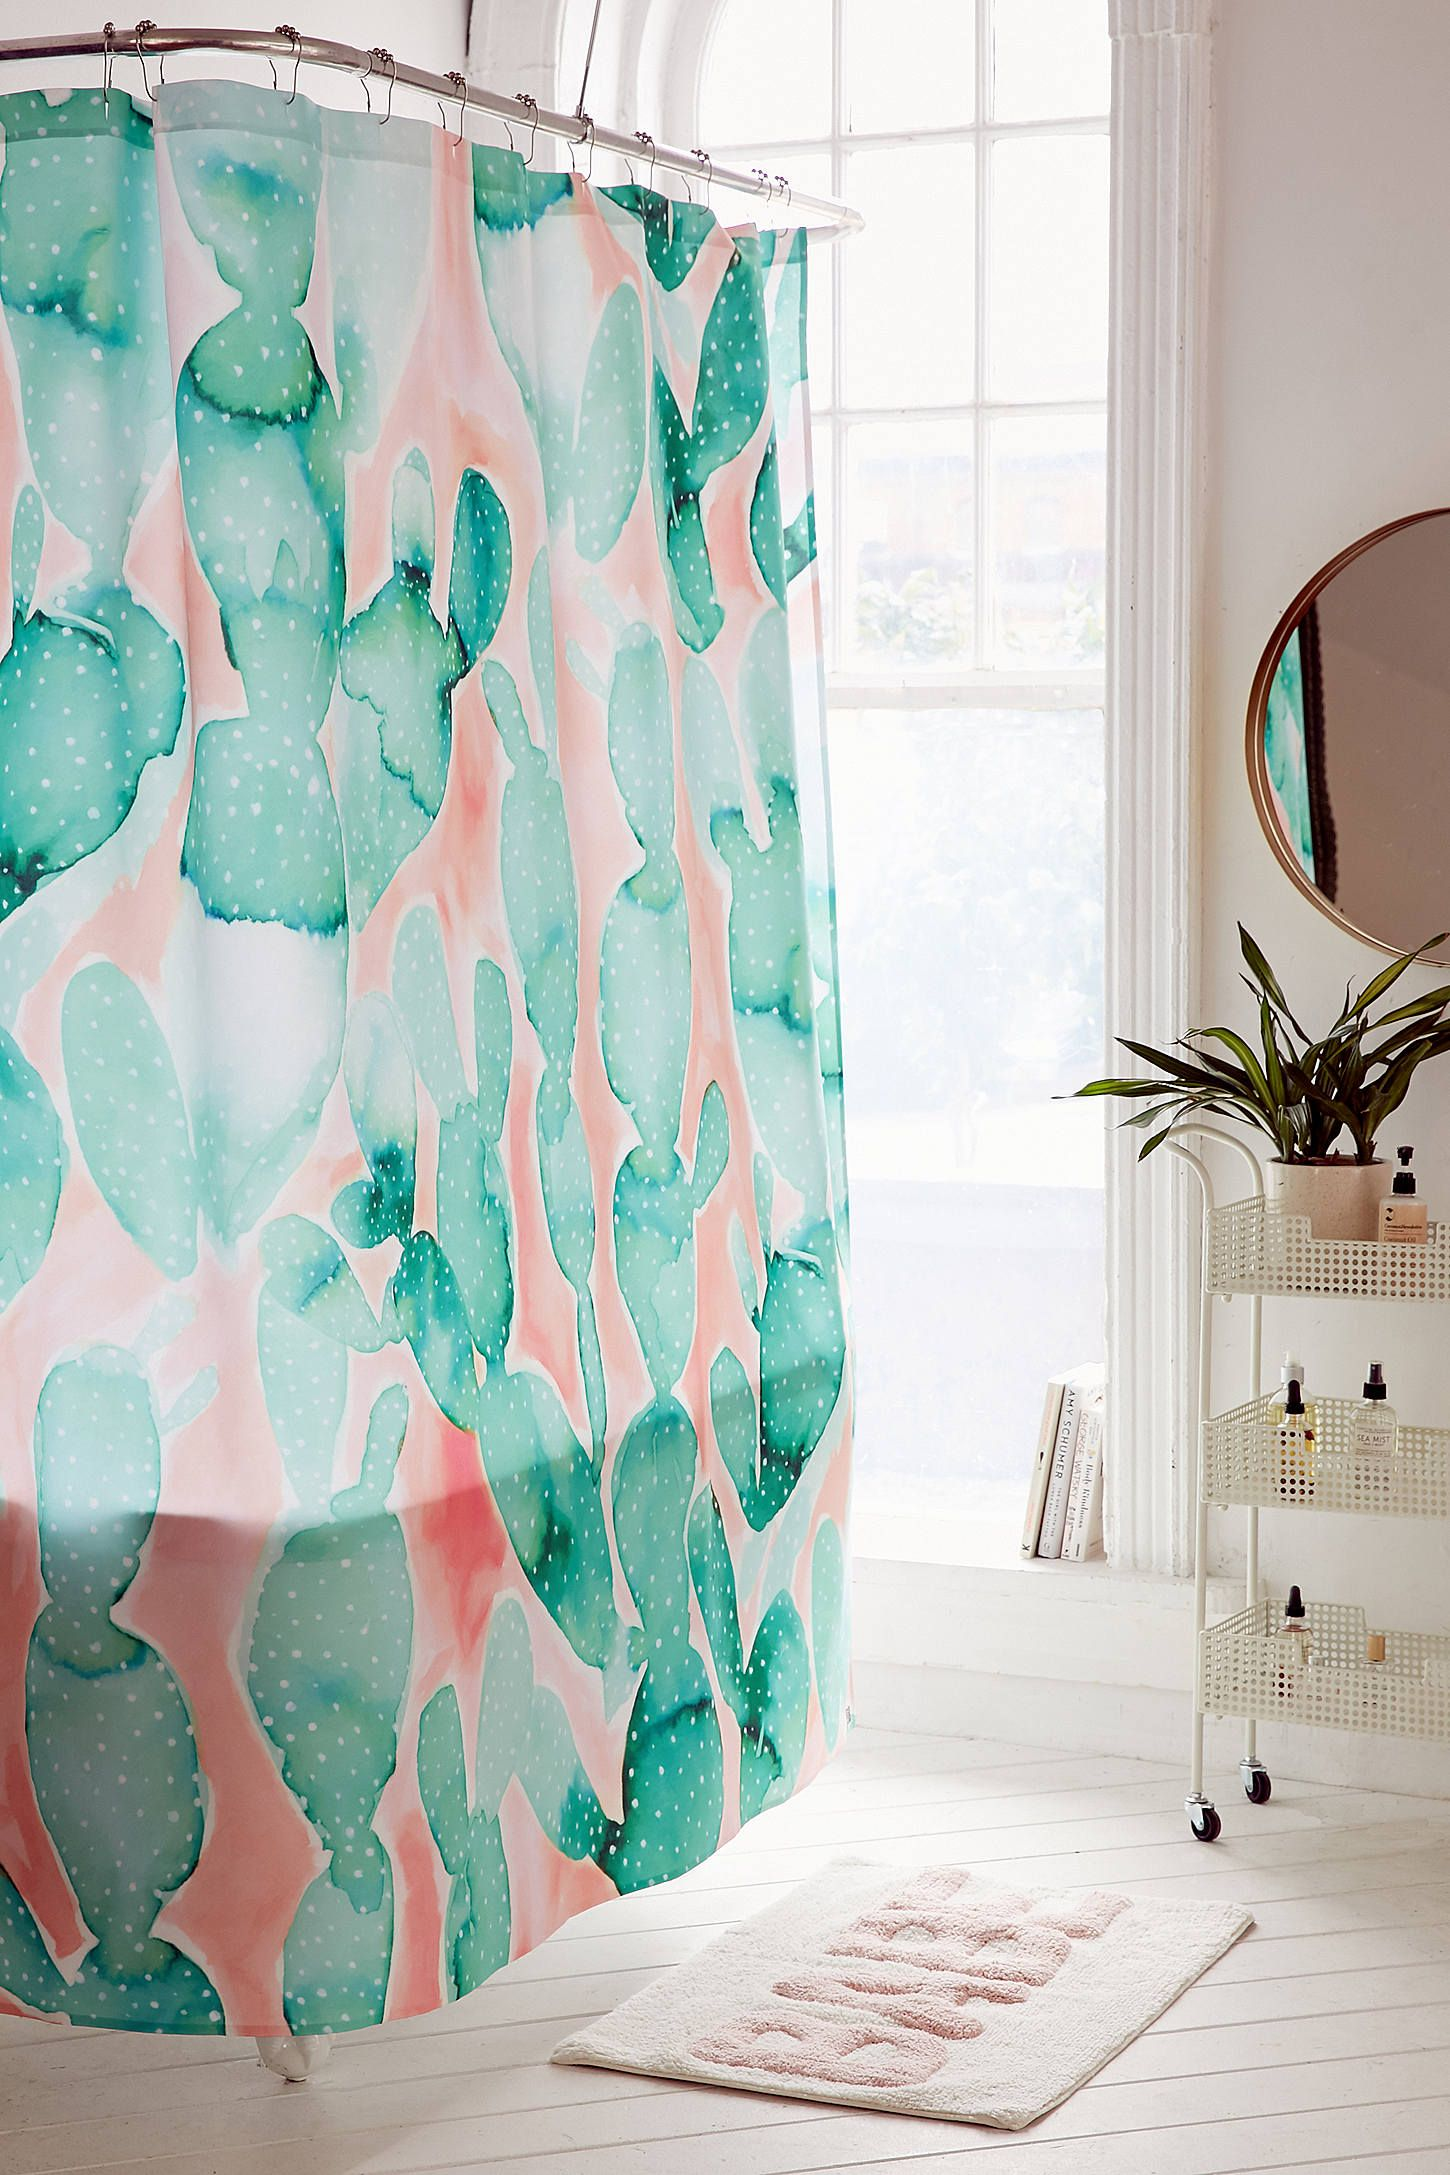 Shop The Jacqueline Maldonado For DENY Paddle Cactus Shower Curtain And More Urban Outfitters At Read Customer Reviews Discover Product